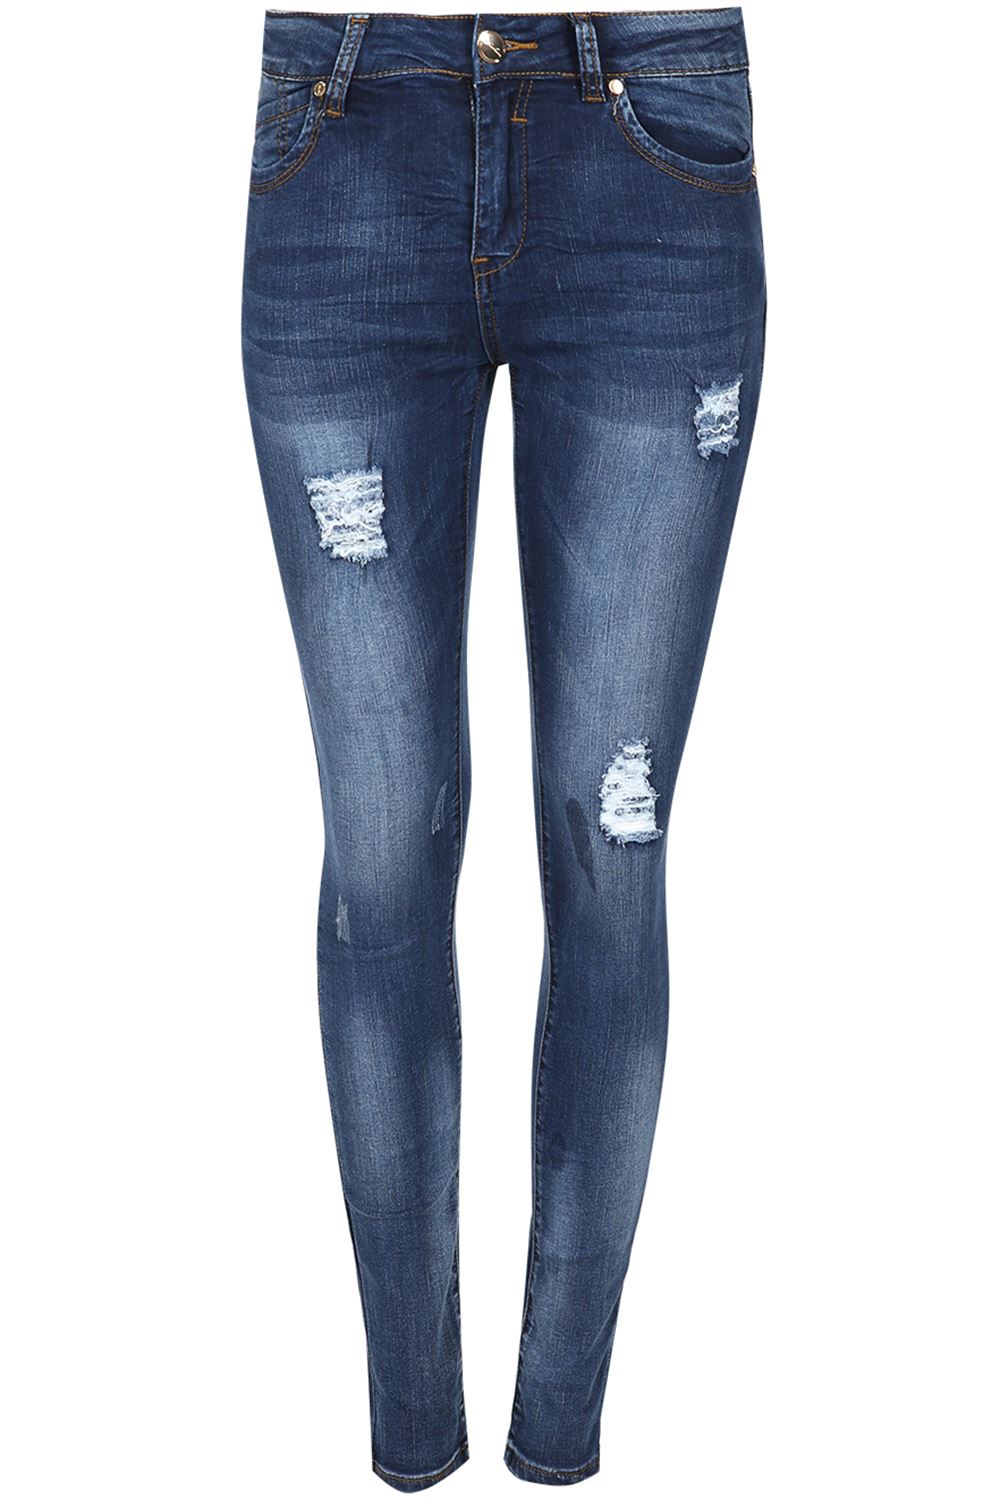 Find great deals on eBay for womens black ripped jeans. Shop with confidence.